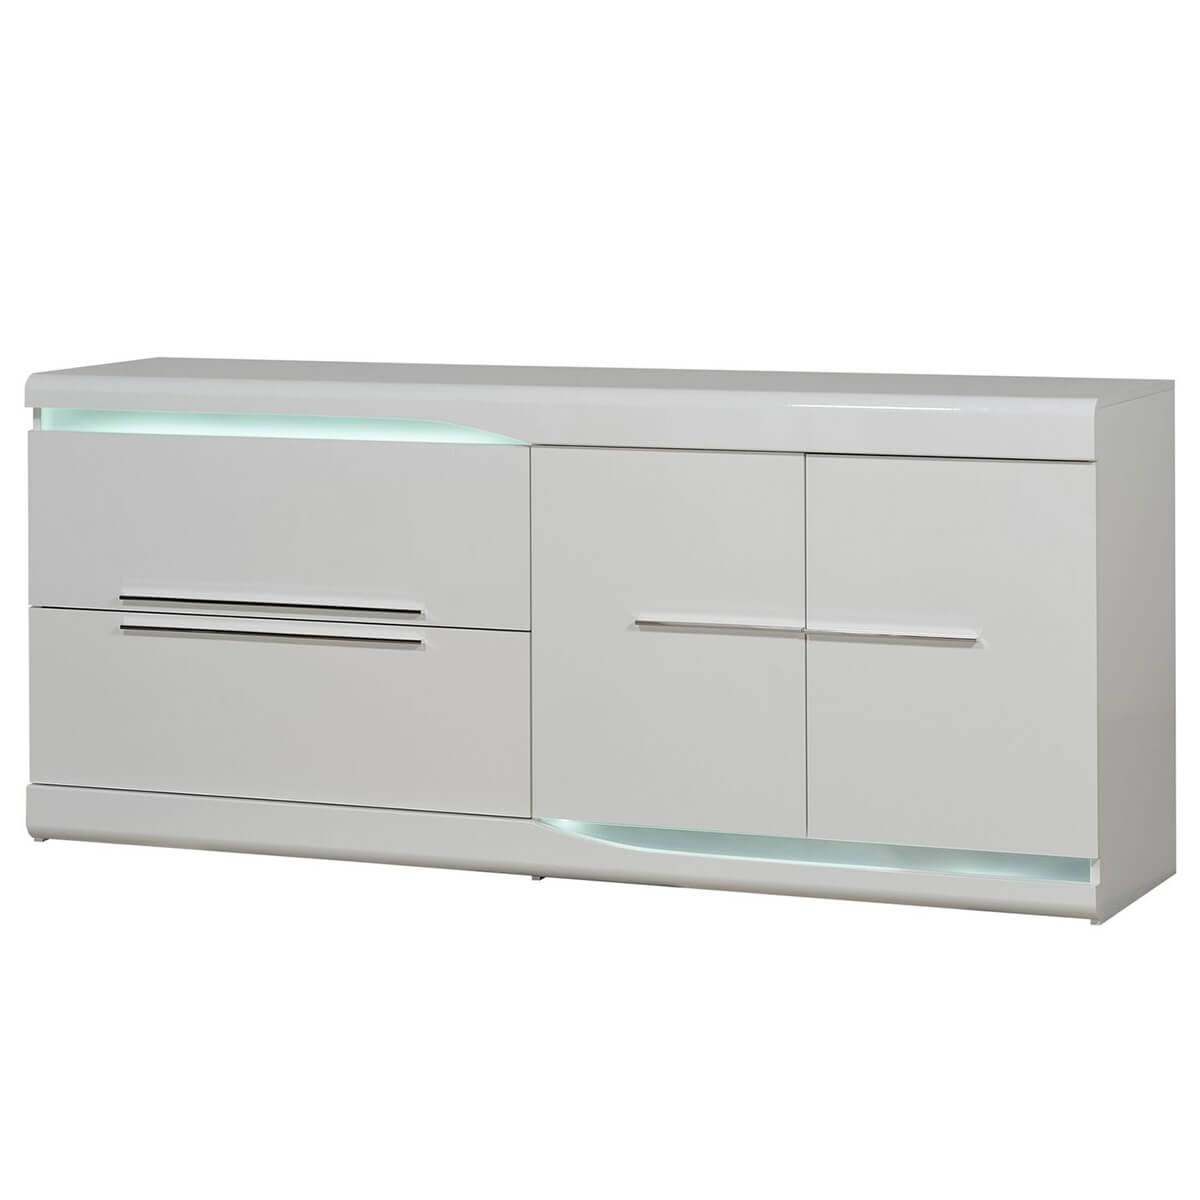 Ovio White Sideboard With Led Lights | Modern Sideboards | Fads With Regard To Sideboards With Lights (View 10 of 15)